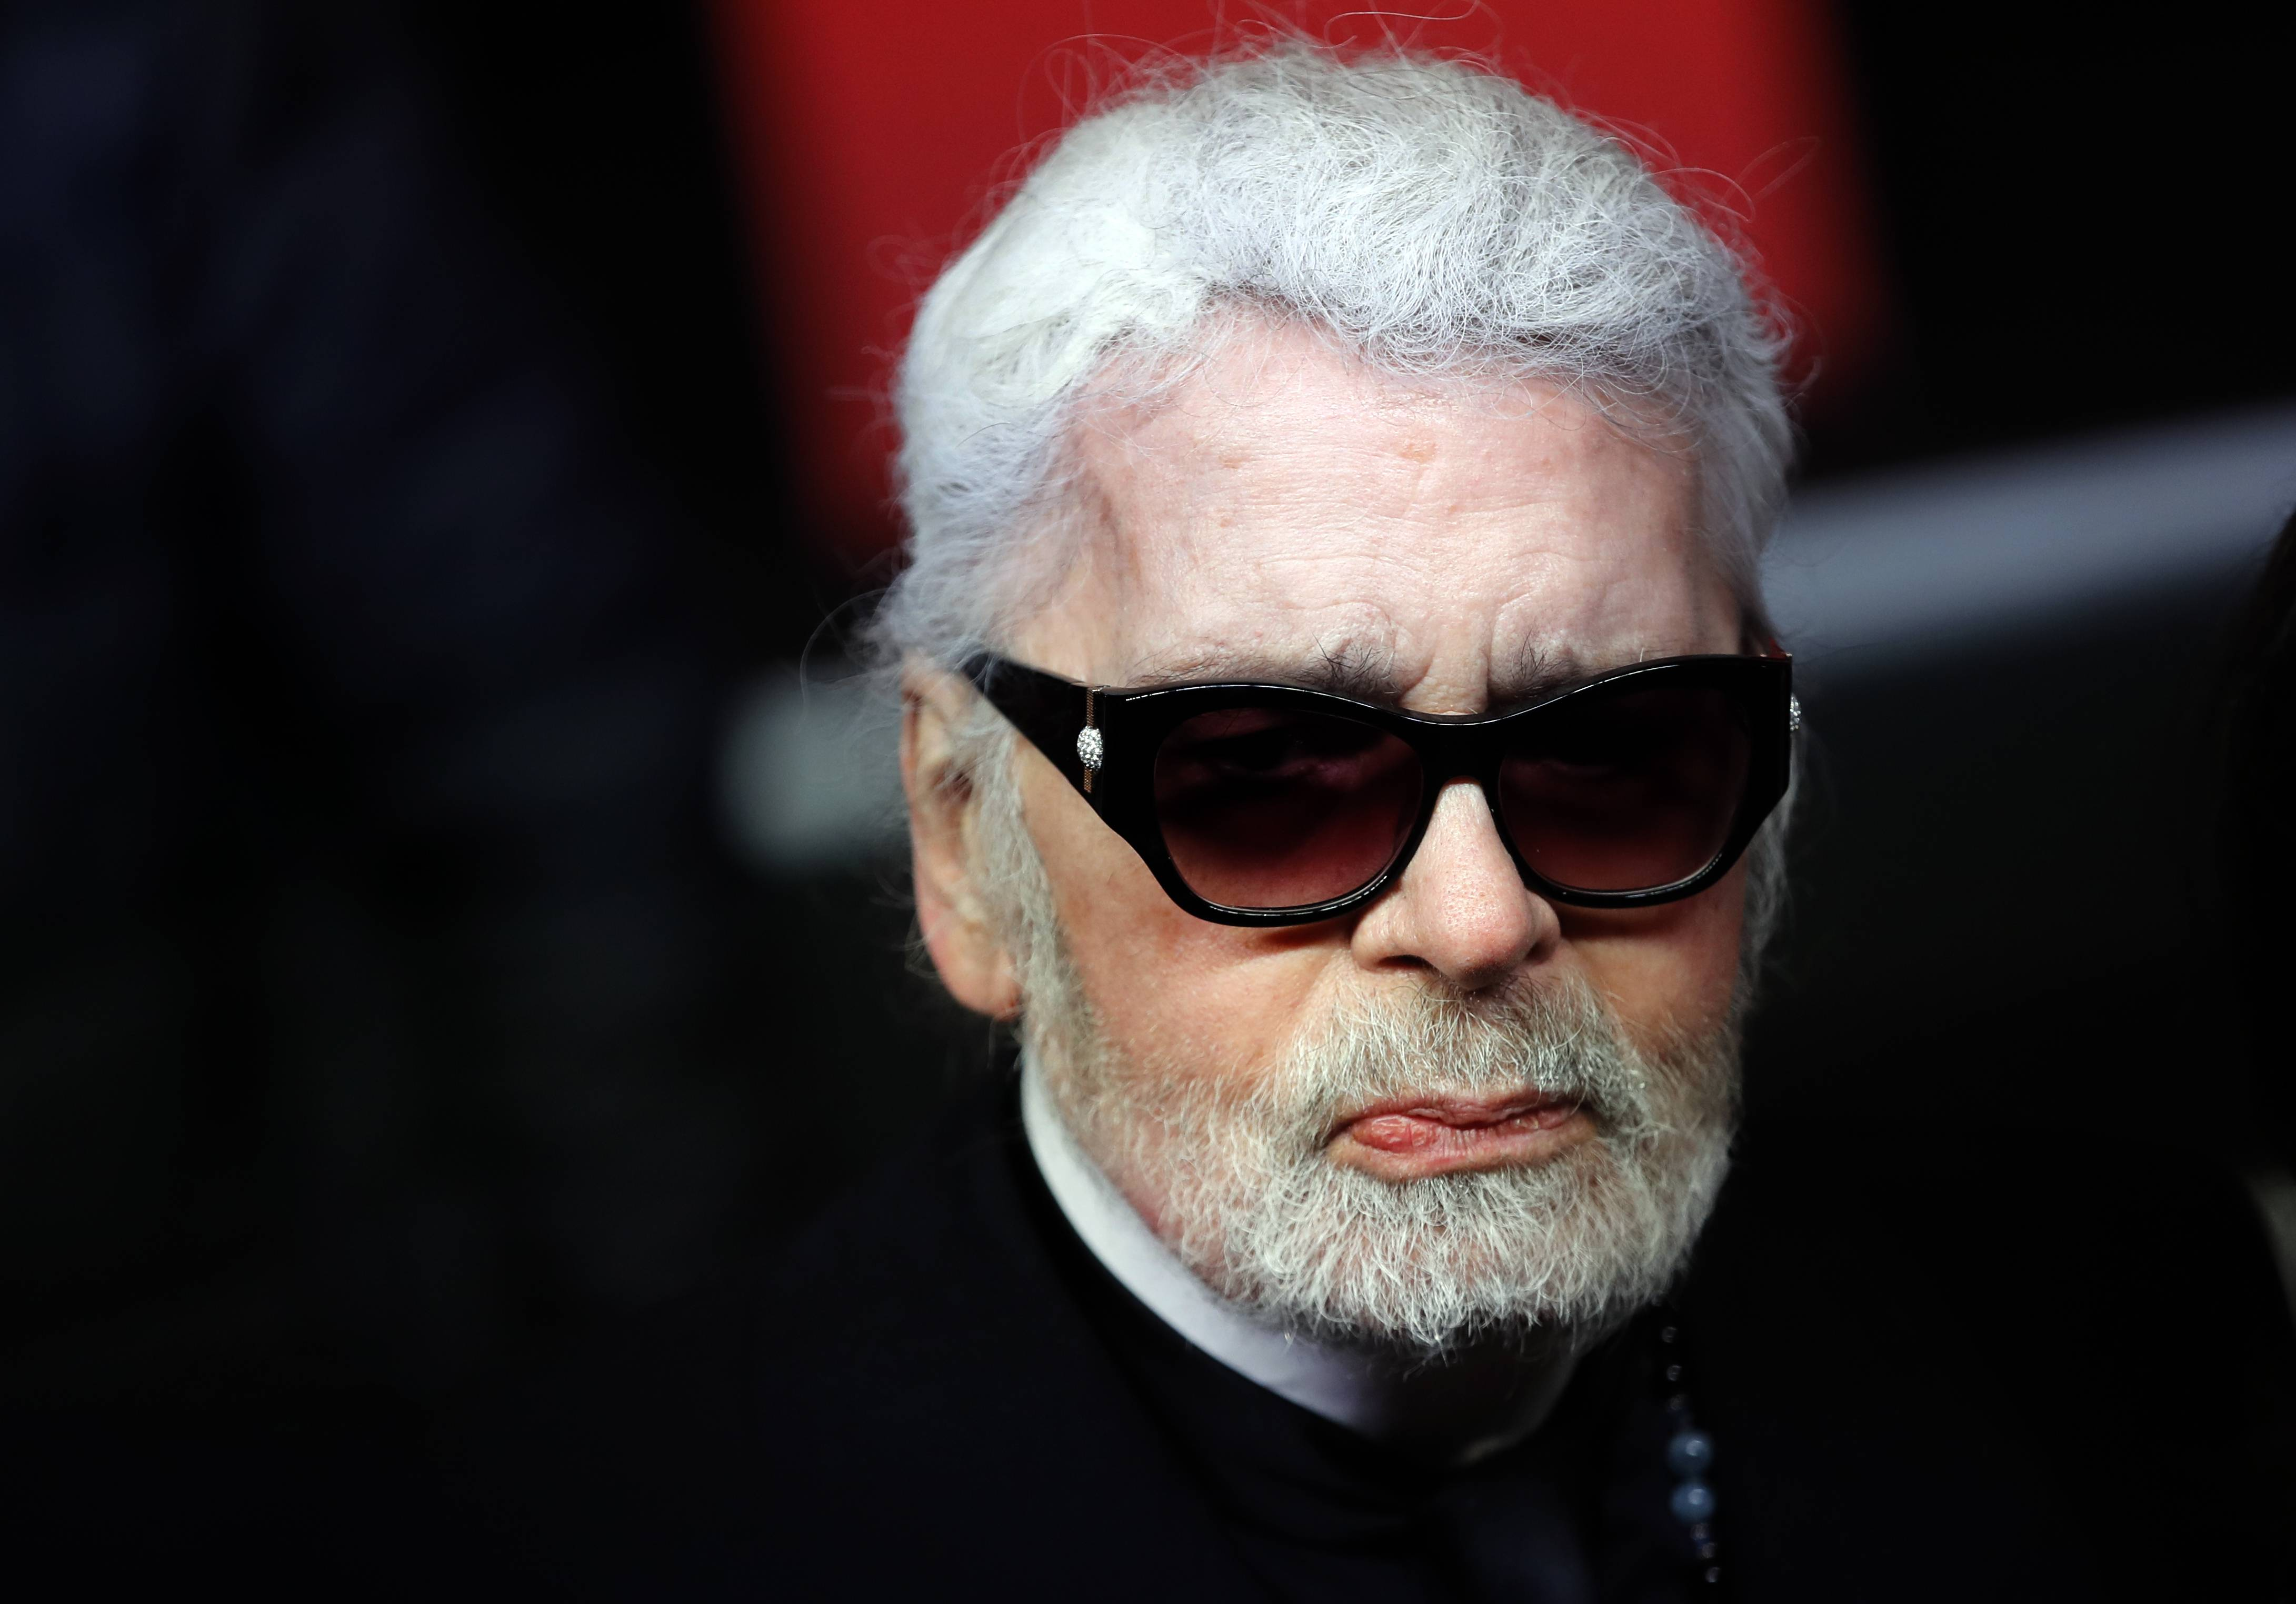 Fashion designer Karl Lagerfeld died Tuesday.